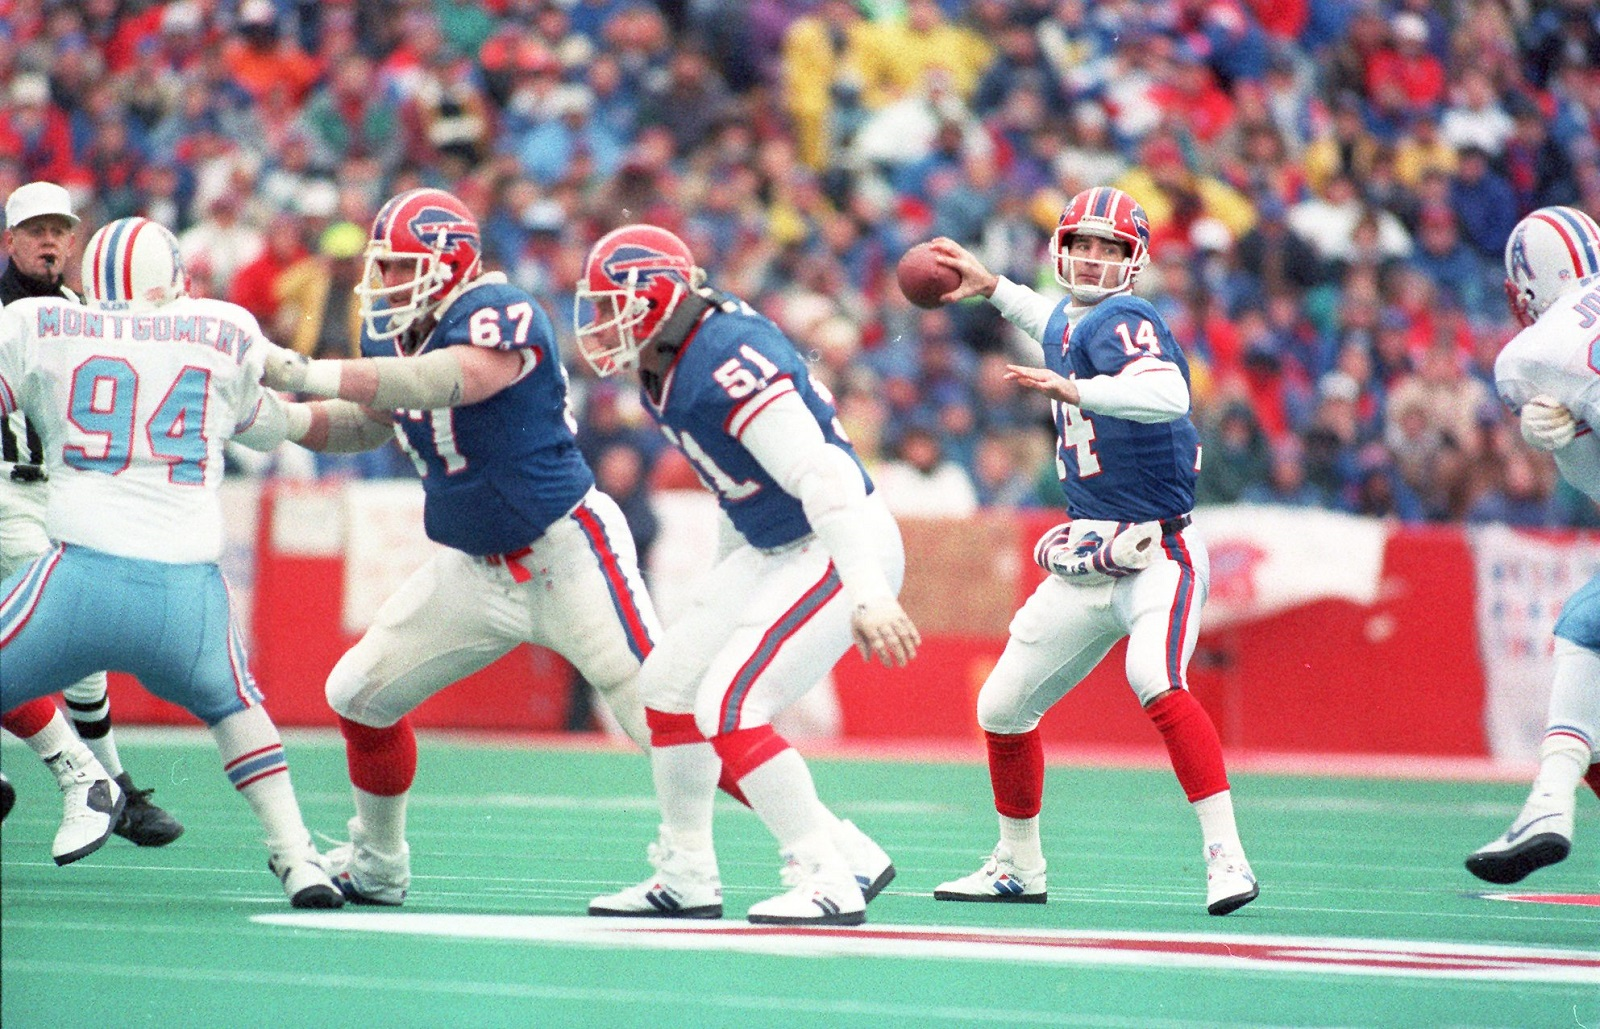 Buffalo Bills quarterback Frank Reich throws a pass during the Bills 41-38 comeback victory over the Houston Oilers on Jan. 3, 1993, in Orchard Park. (News file photo)